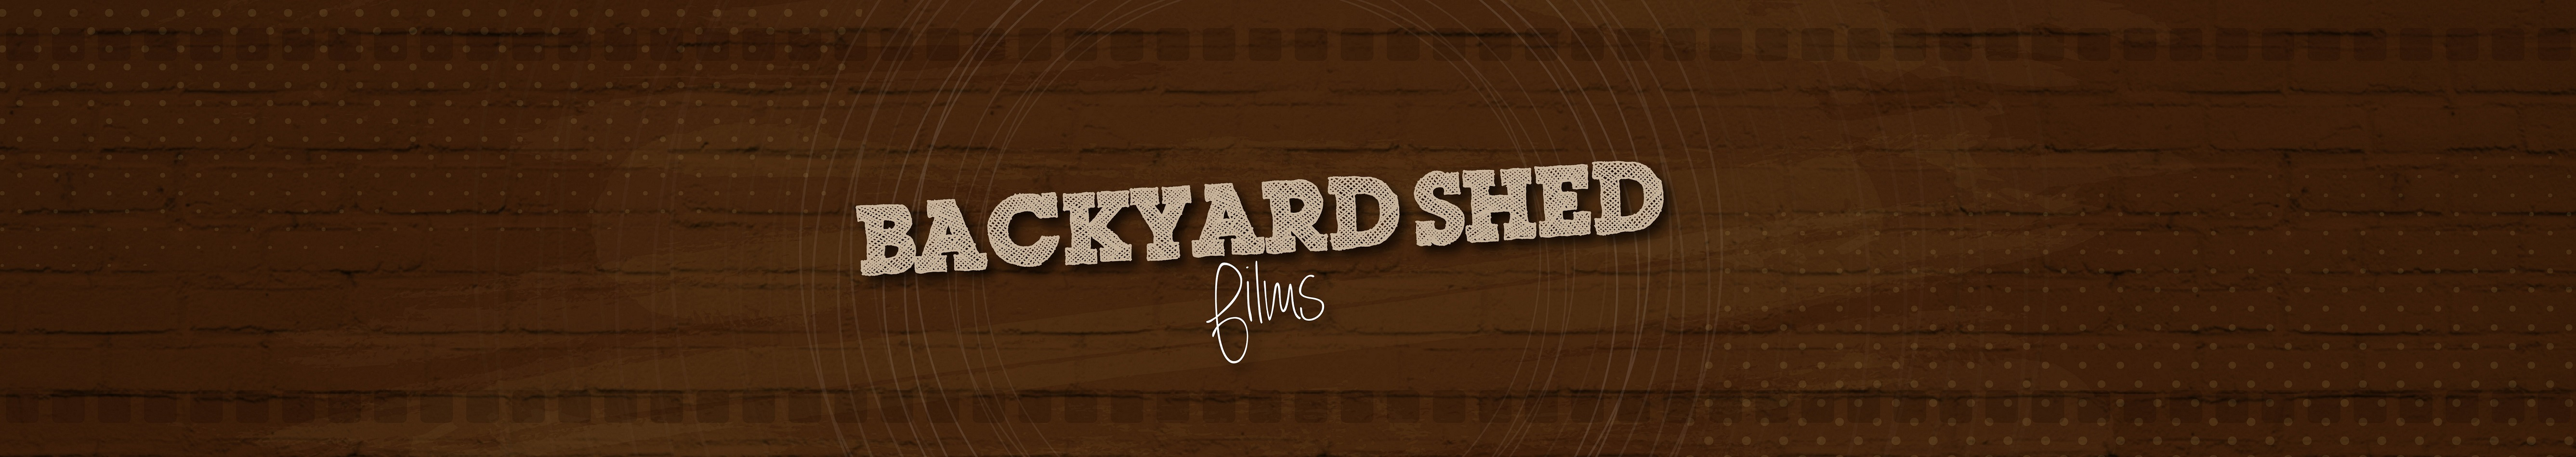 Let's Rob The Cheeseshop ~ (full feature film) | Backyard Shed Films